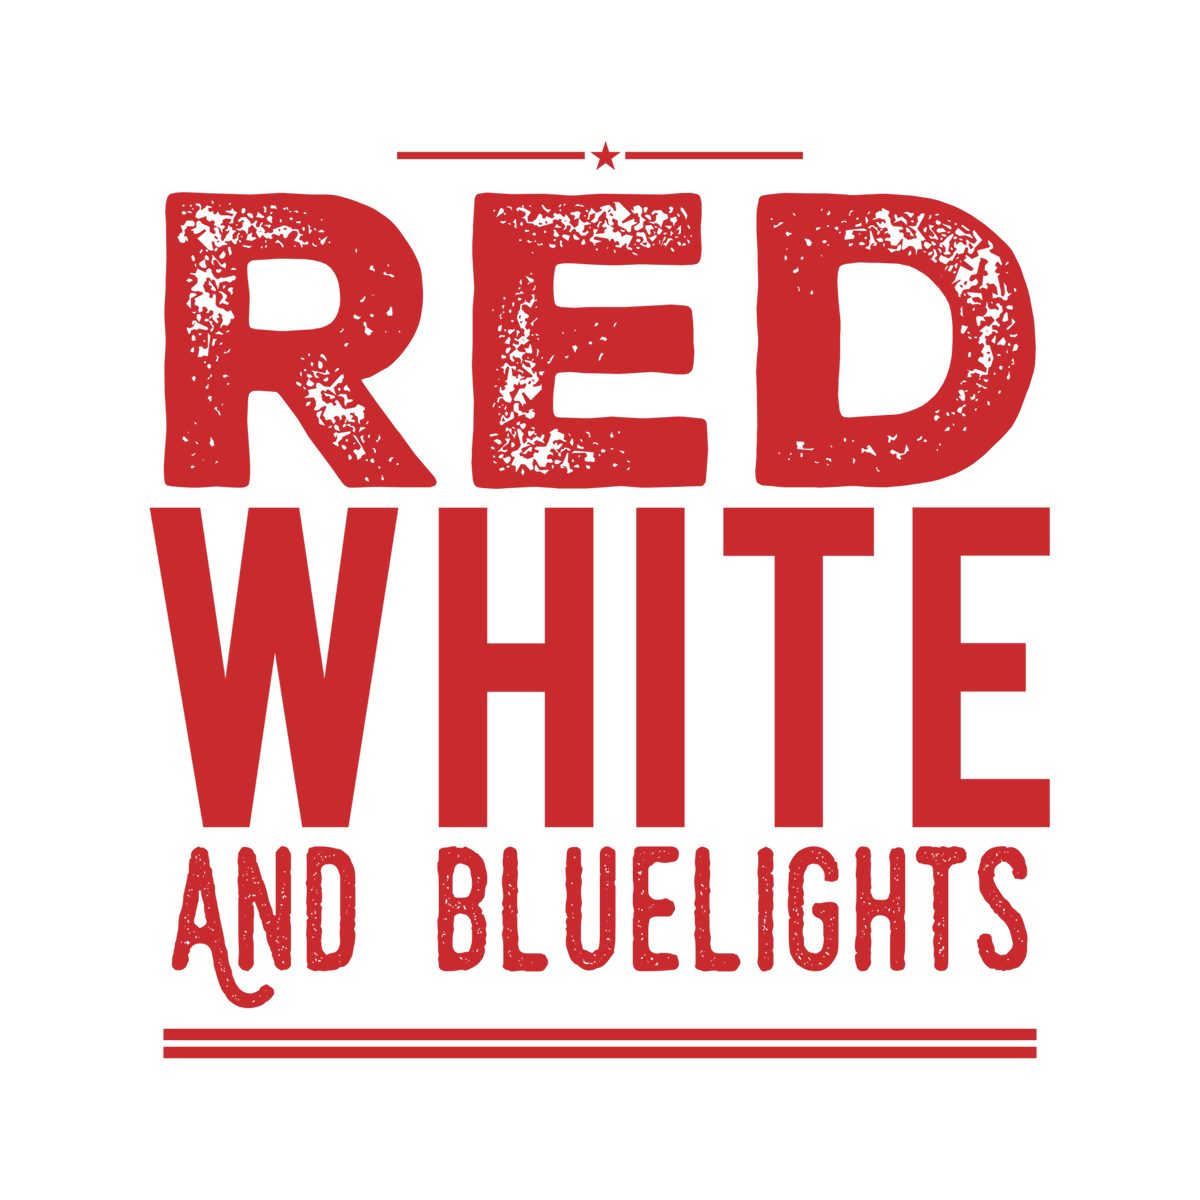 Red, White & Bluelights